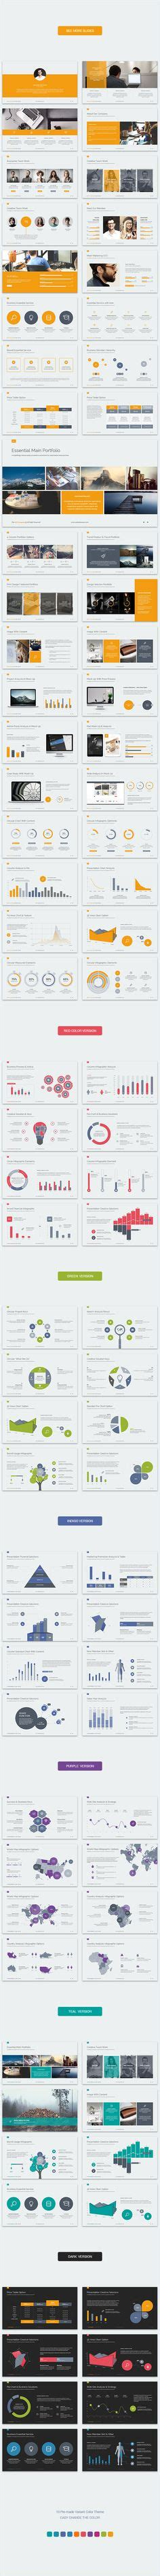 Simple Powerpoint Template With Clean And Elegant Easy To Edit Slides Powerpoint Presentations Wix Timeline Template